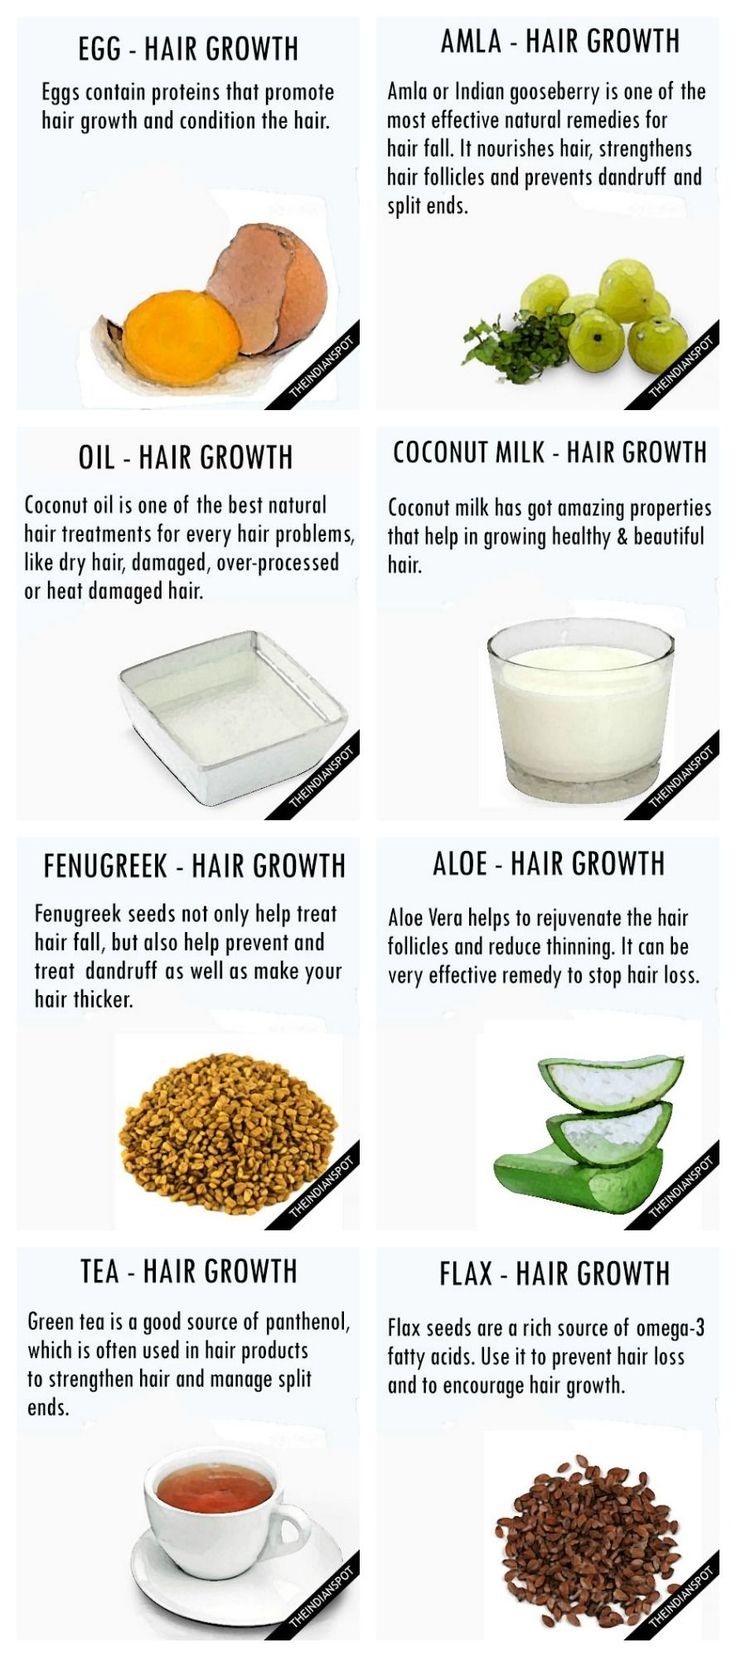 TOP NATURAL HAIR GROWTH REMEDIES